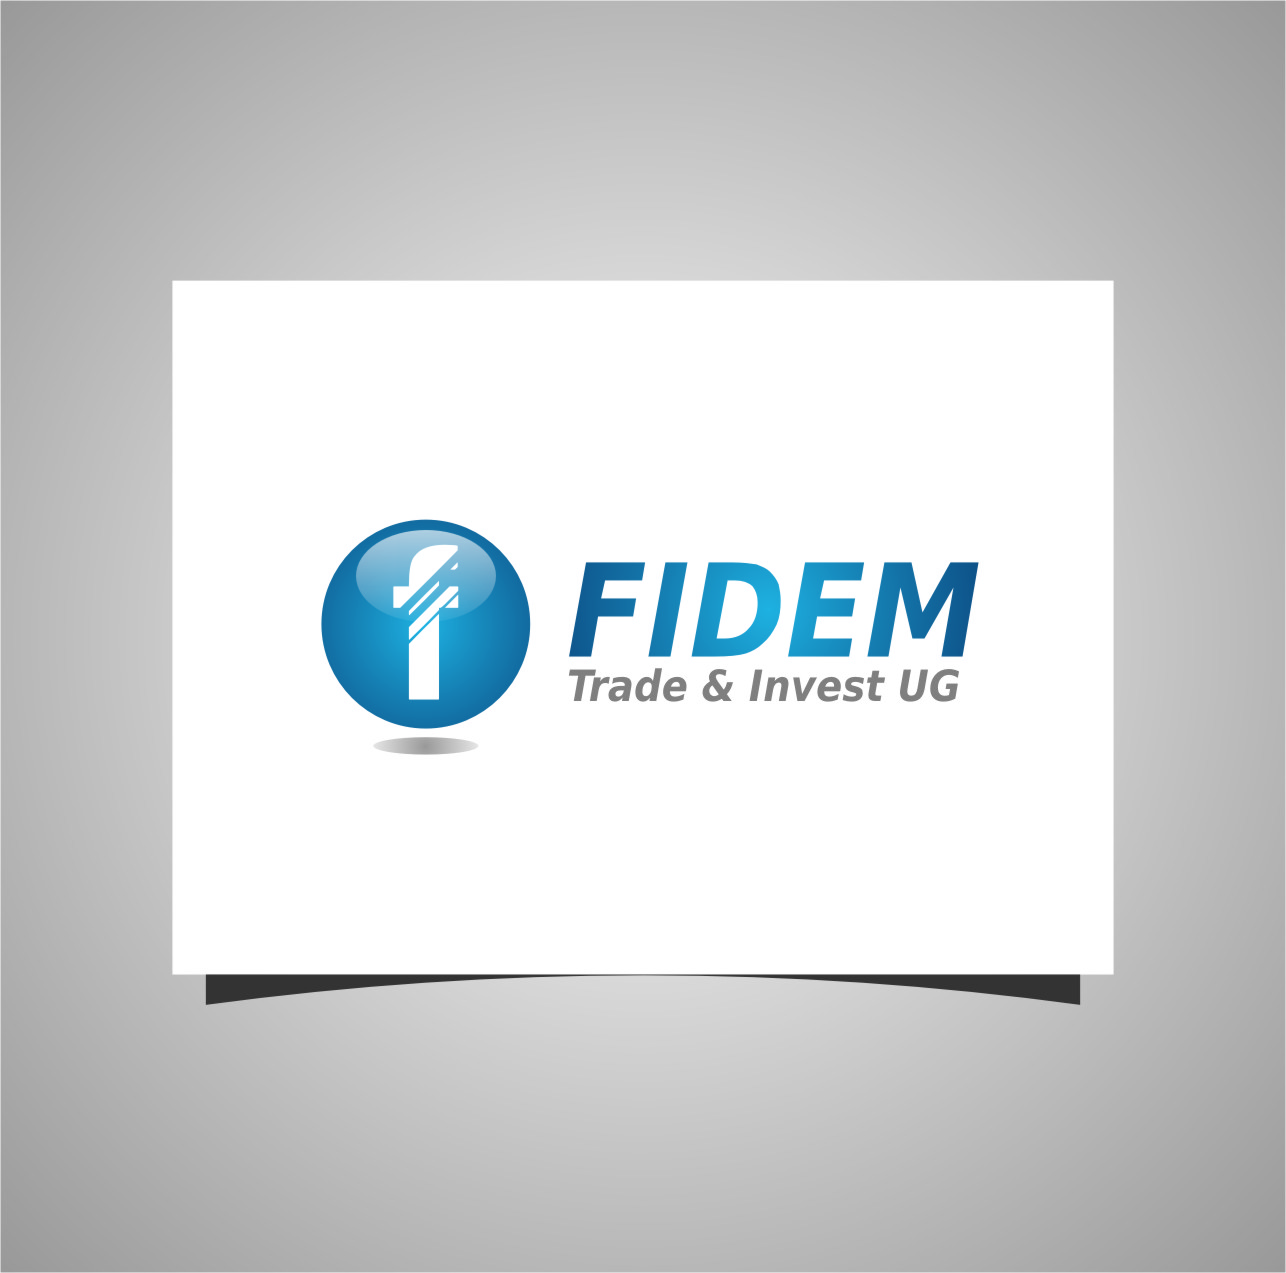 Logo Design by Ngepet_art - Entry No. 40 in the Logo Design Contest Professional Logo Design for FIDEM Trade & Invest UG.